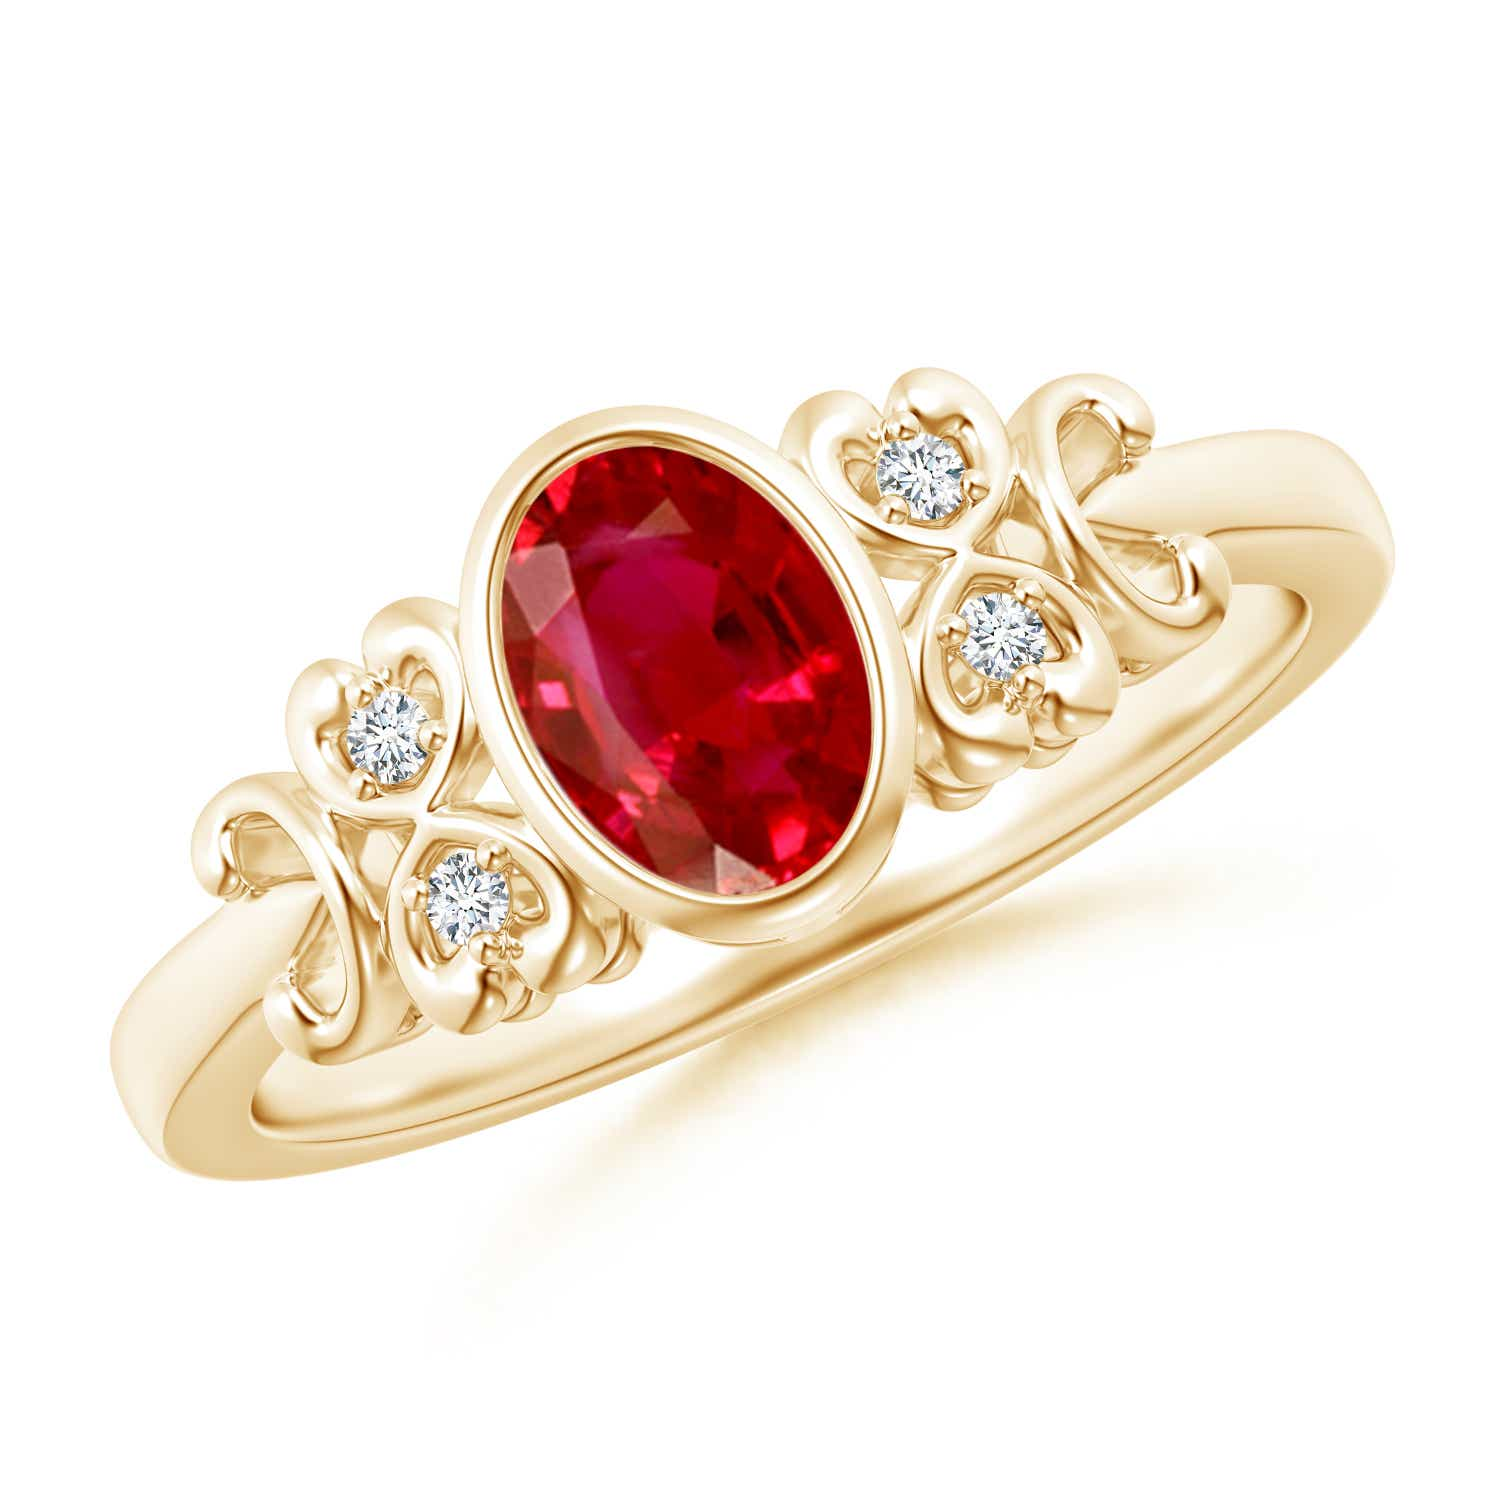 Angara Vintage Inspired Oval Ruby Halo Ring in 14K Rose Gold tdk6v